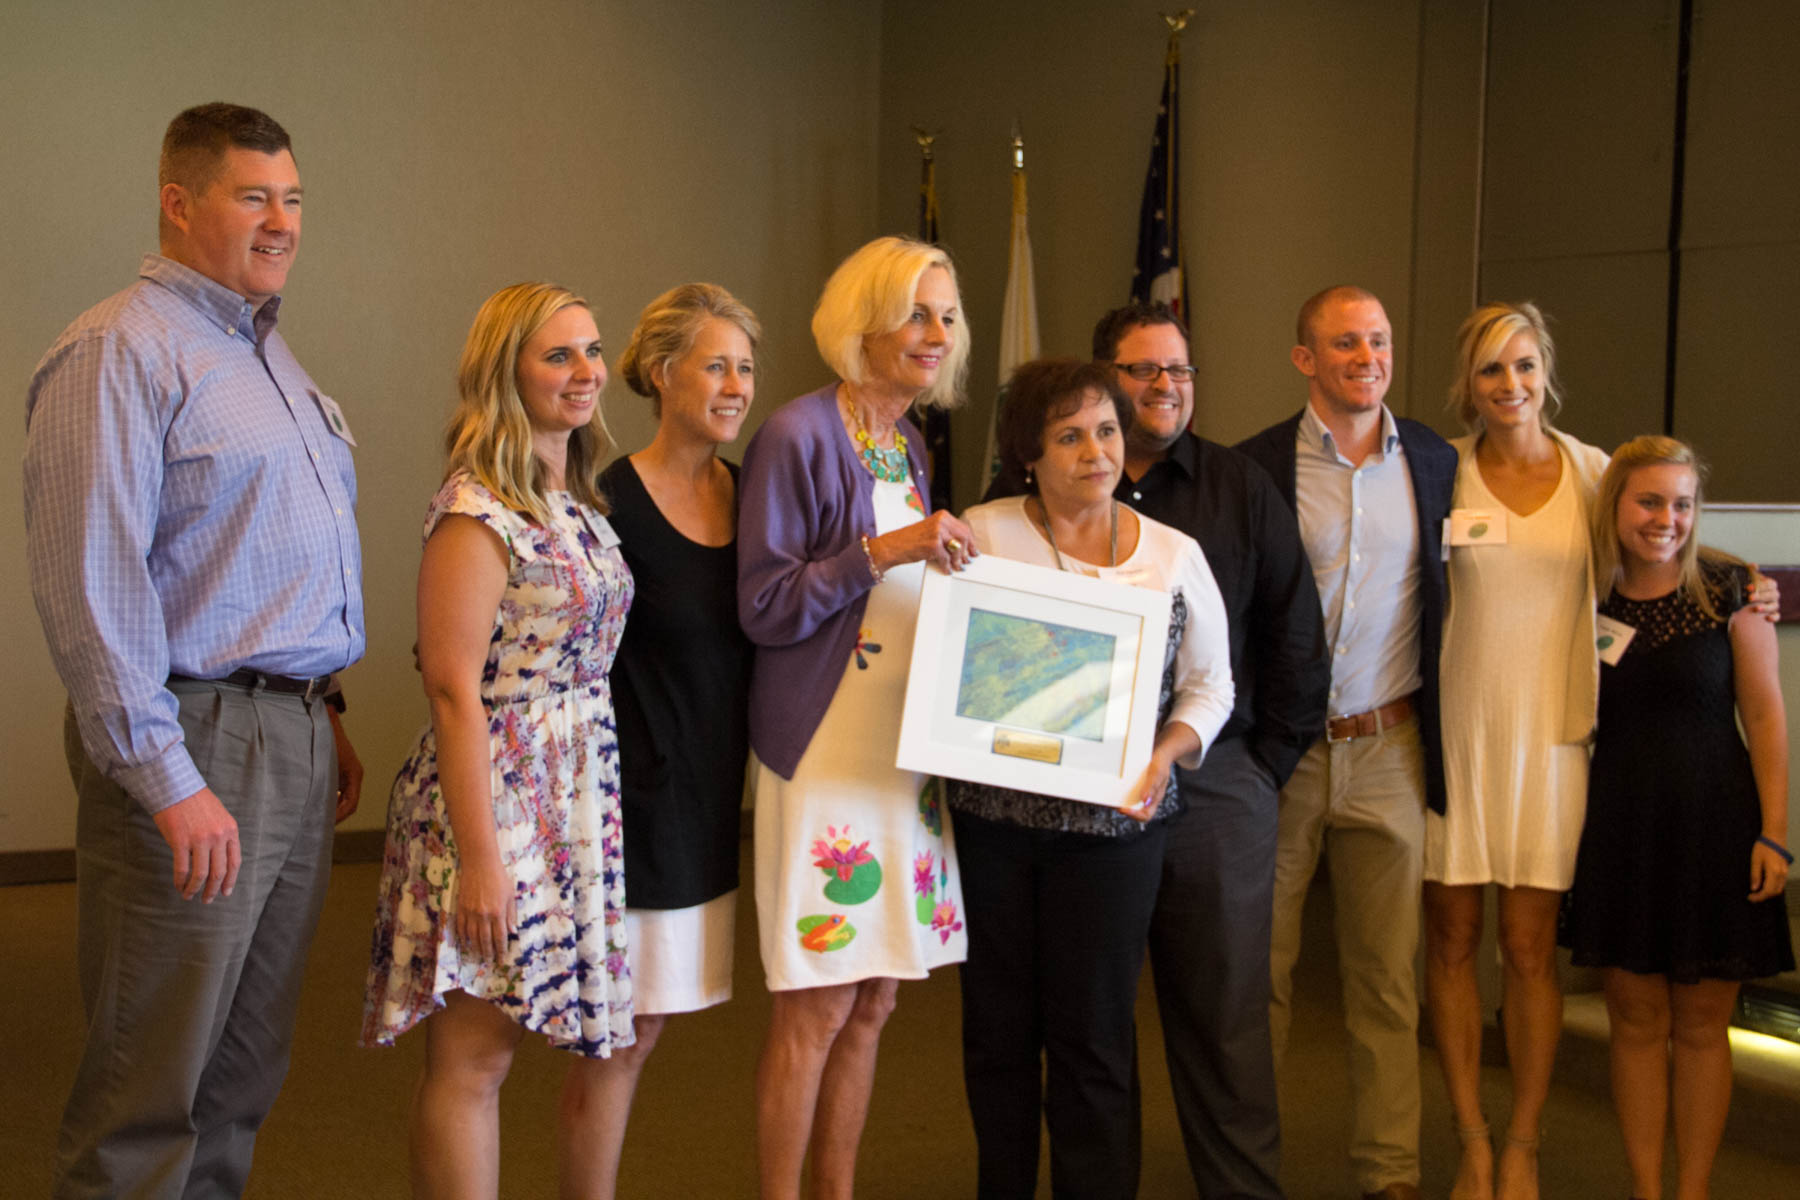 Dr. Maureen Barber-Carey gifted The Center with a beautiful client painting to commemorate our Pursuit journey